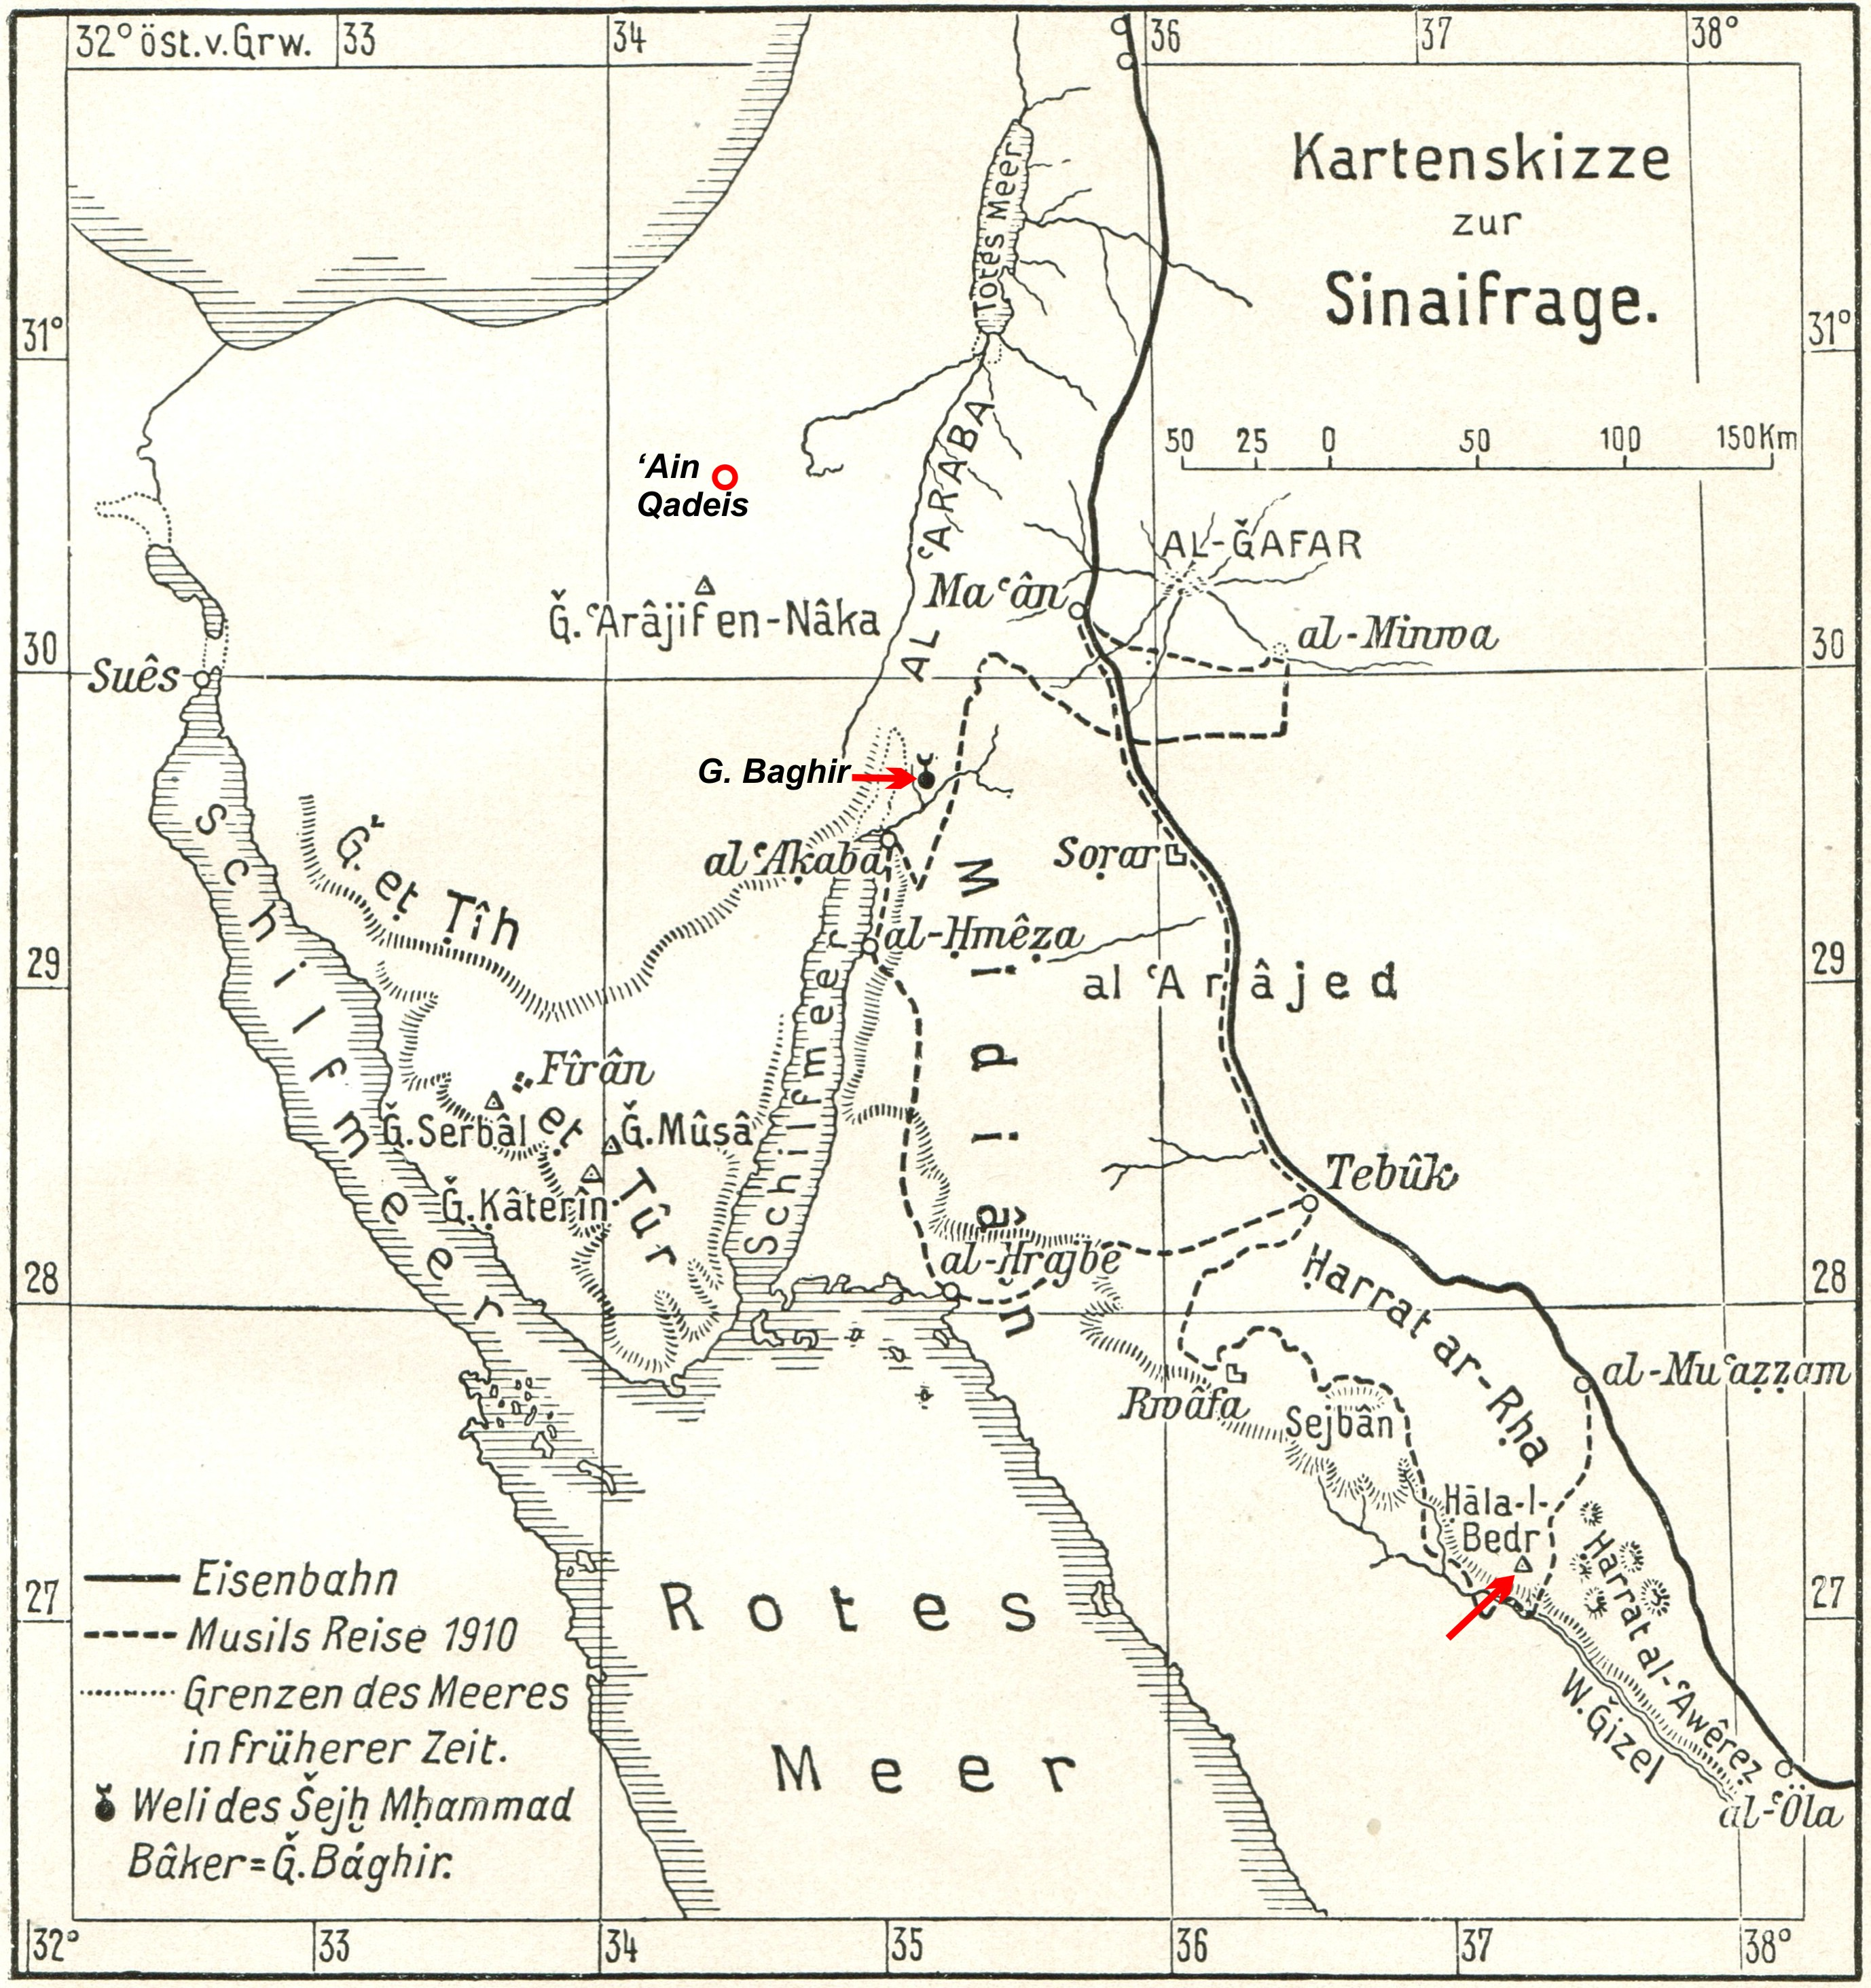 Figure 1. The locations of Hala-l-Bedr, G. Baghir, and Ain Qadeis. (Adapted from Oberhummer 1912, Plate 3.)